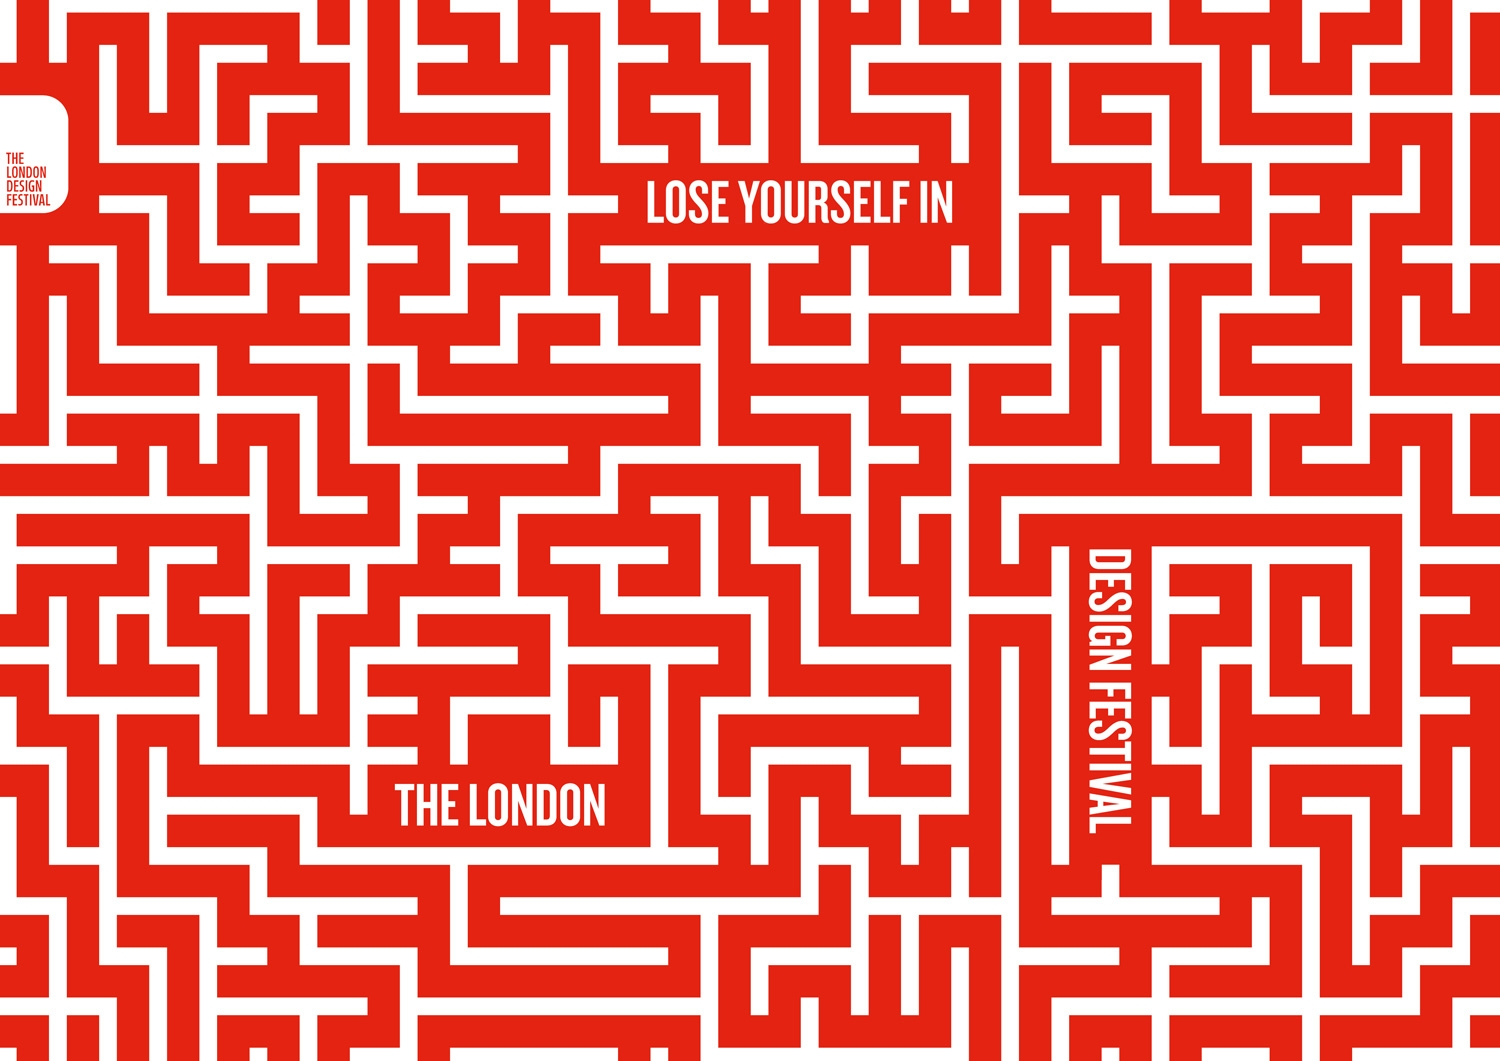 Maze for the London design festival